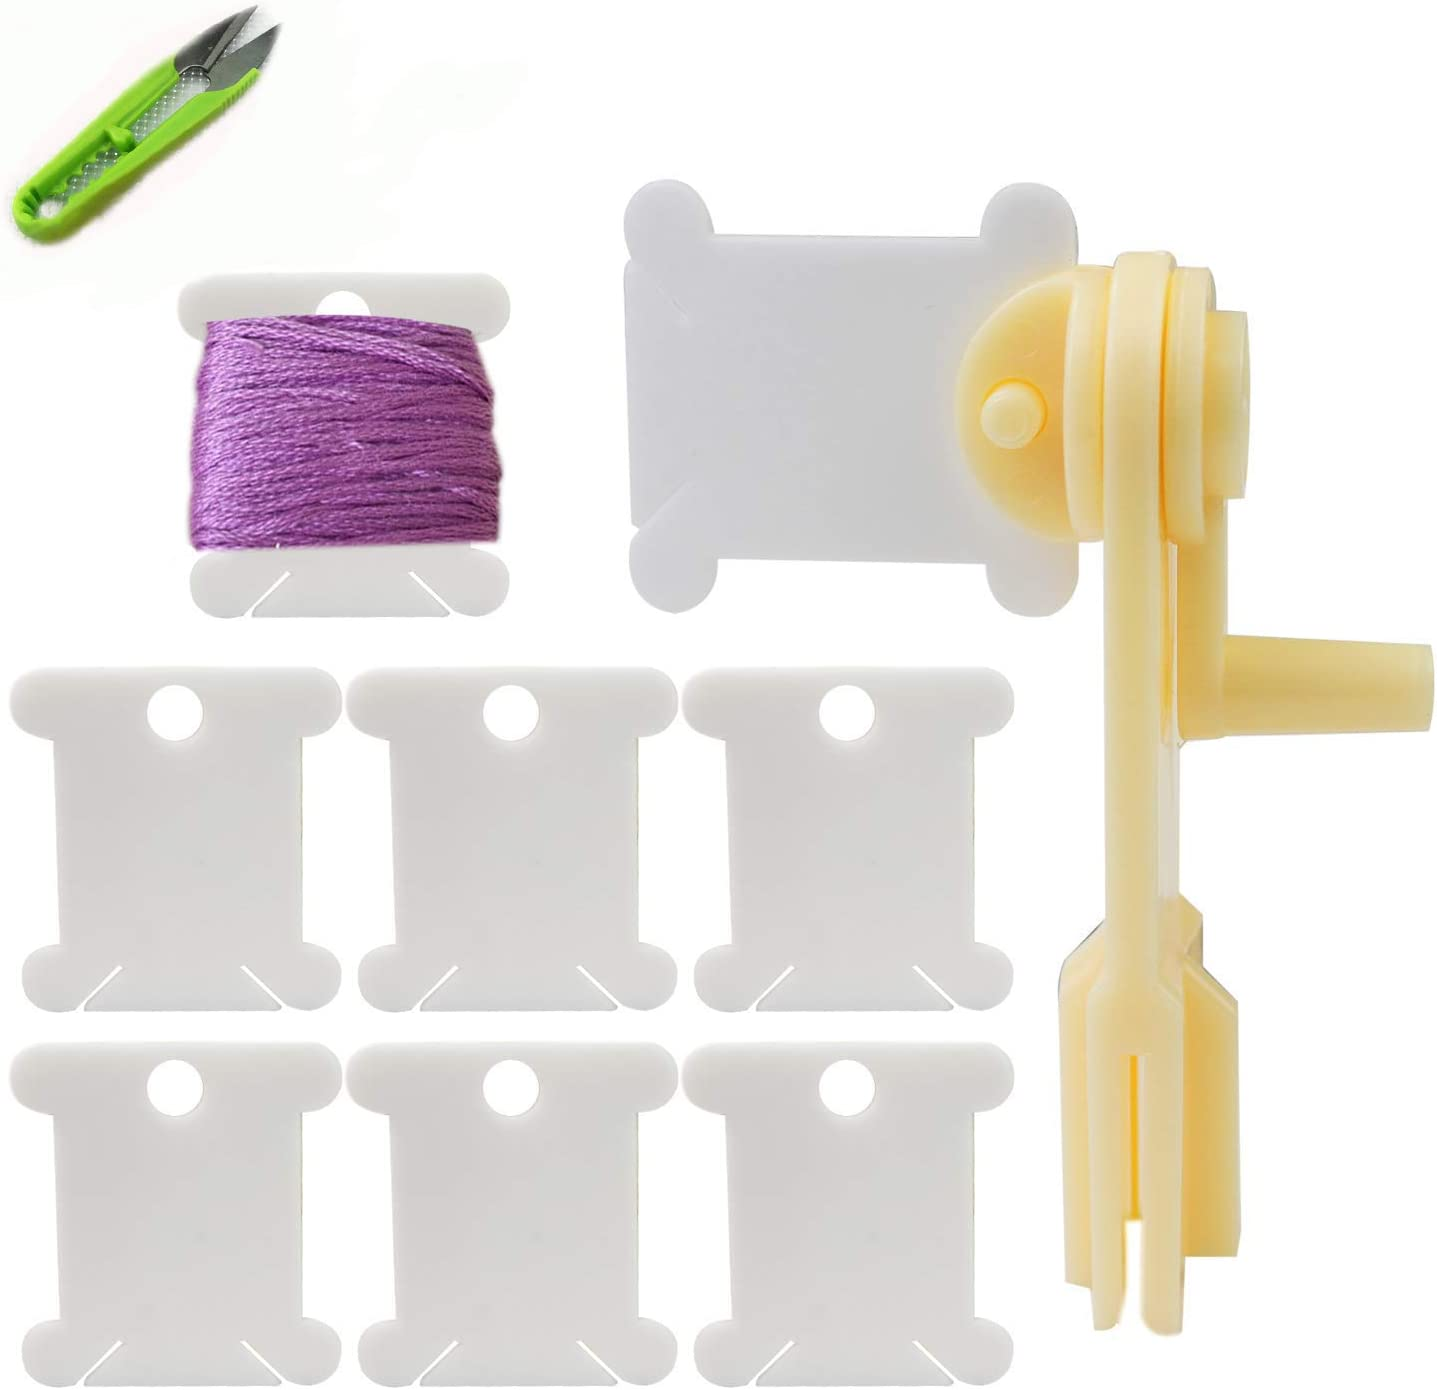 Faxco 240Pcs Colored Plastic Floss Bobbins for Cross-Stitch Bobbins Card Thread Holder Store Floss Craft DIY Embroidery Floss